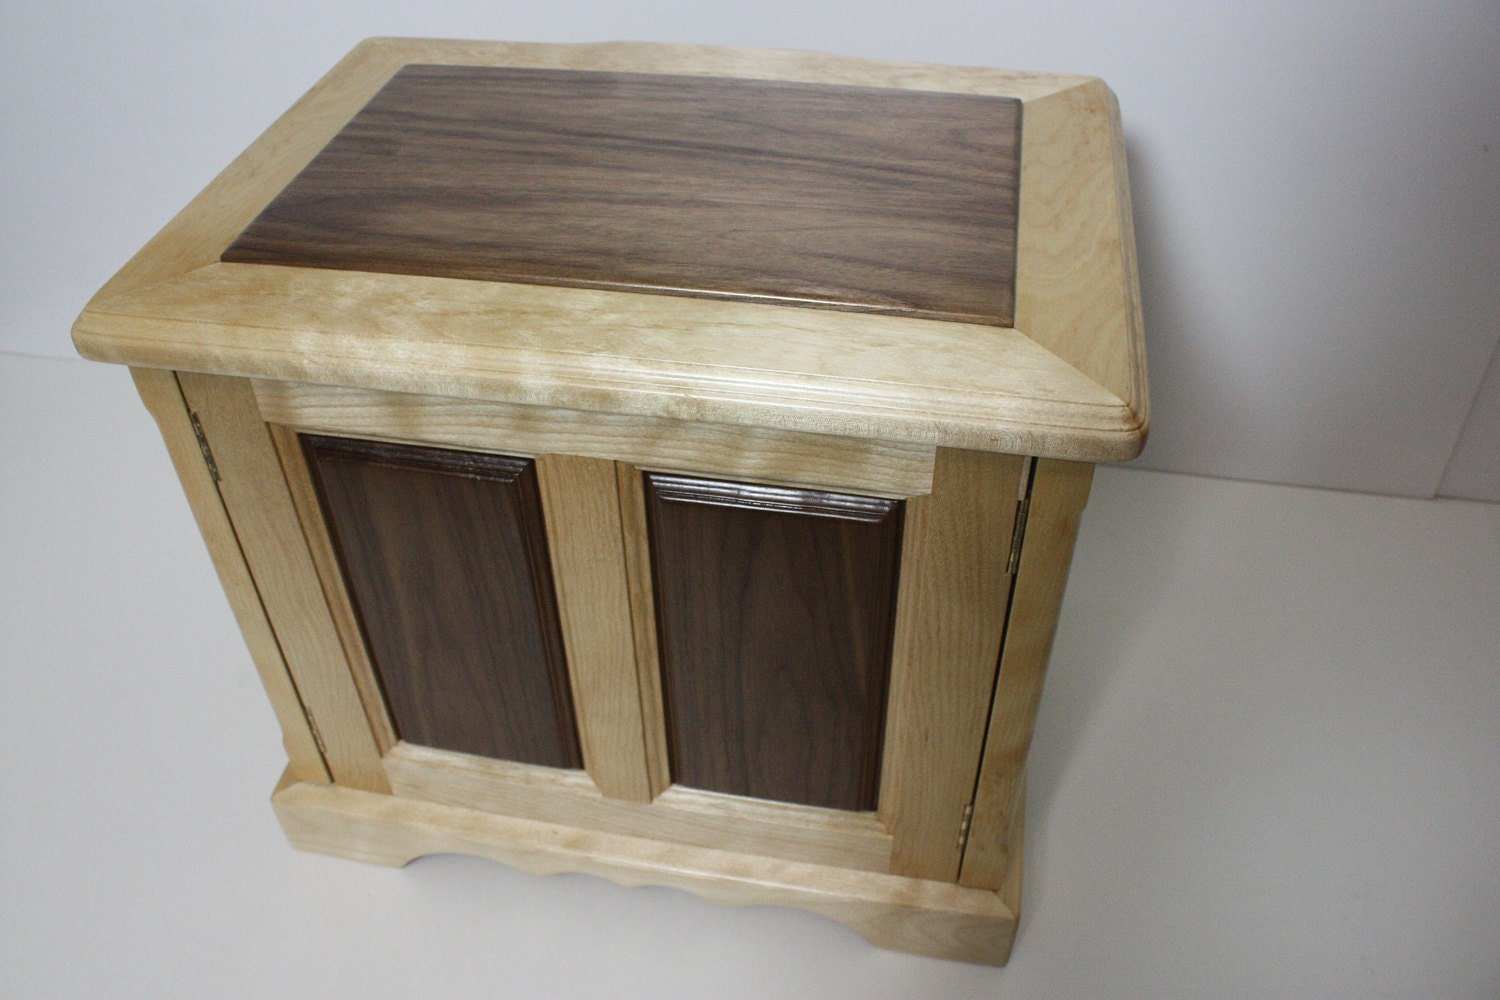 Large Handmade Wood Jewelry Box with Raised Panels